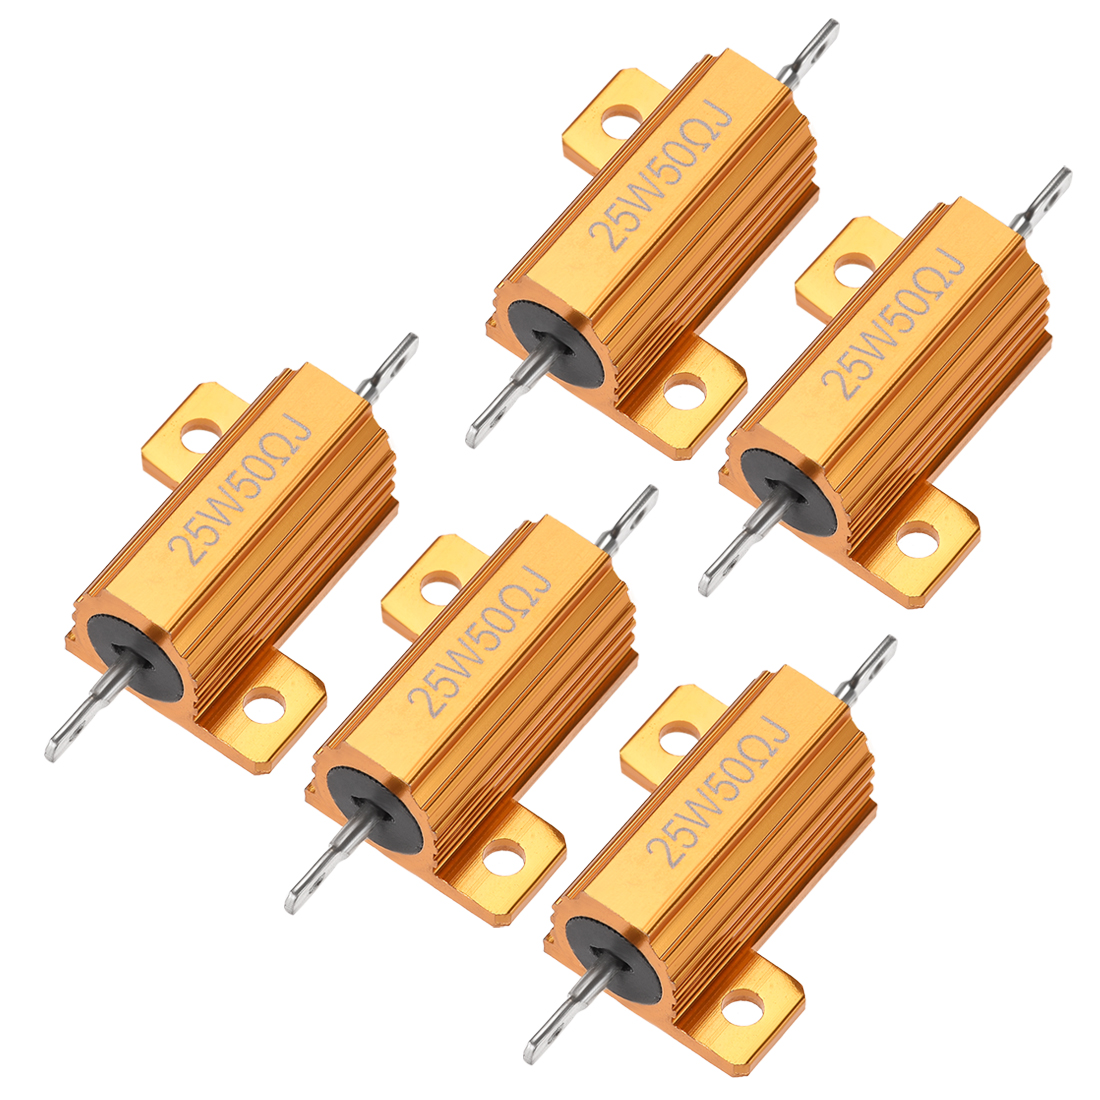 25W 50 Ohm 5% Aluminum Housing Resistor Wirewound Resistor Gold Tone 5 Pcs